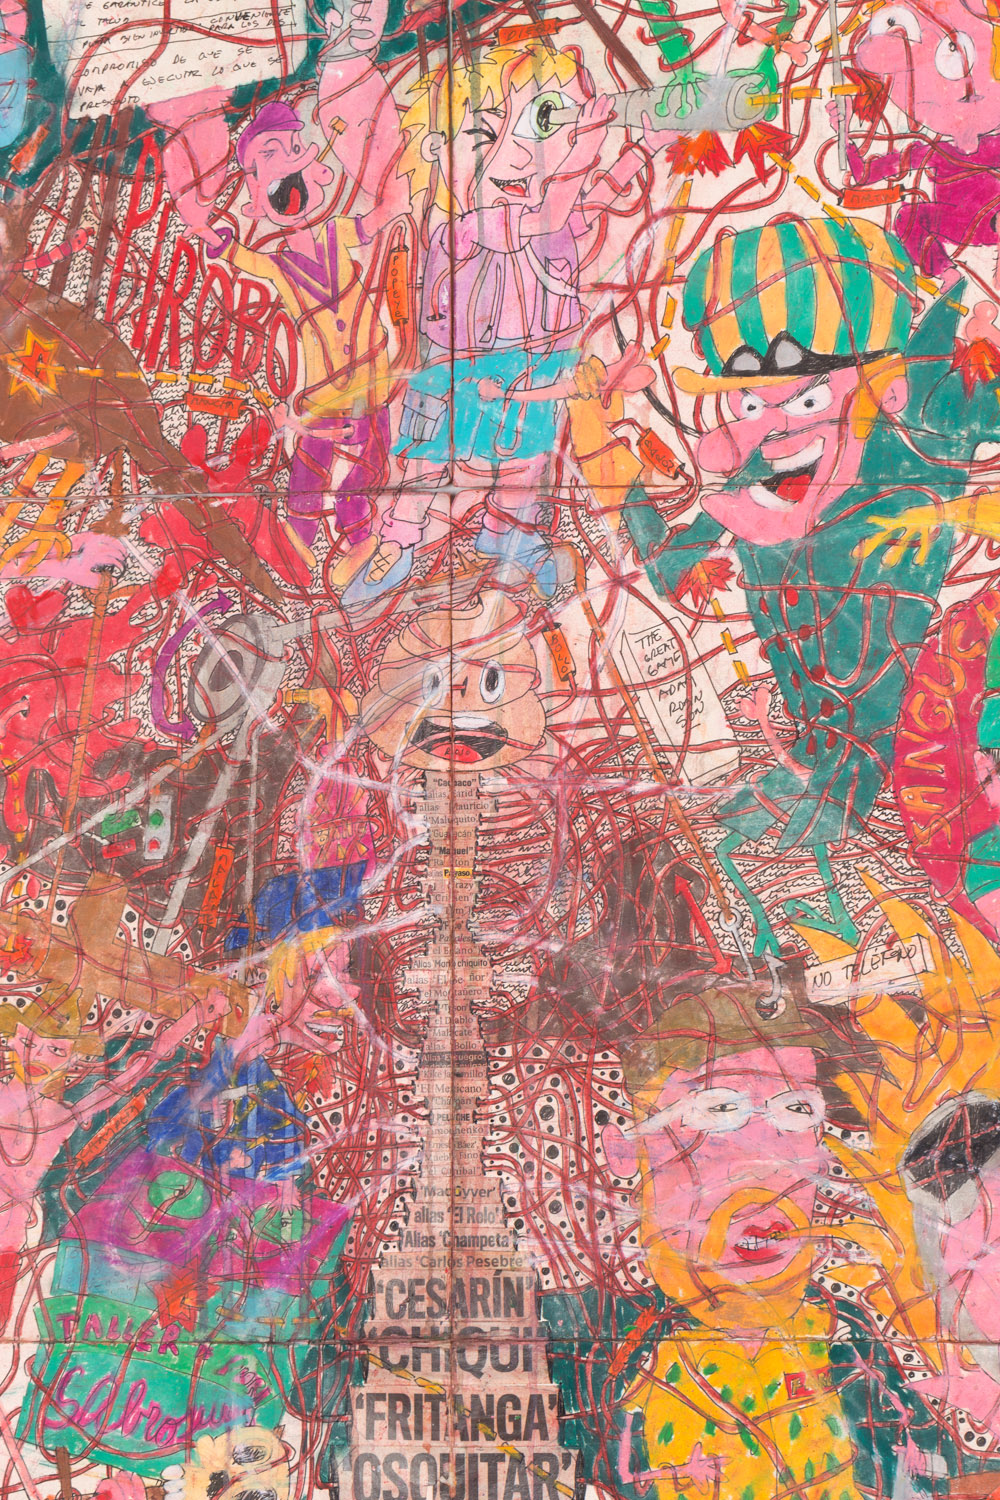 Camilo Restrepo. <em>A Land Reform 17, </em>2019. Ink, water-soluble wax pastel, tape, stickers, newspaper clippings, glue and saliva on paper, 46 3/4 x 115 3/4 inches (118.7 x 294 cm) Detail